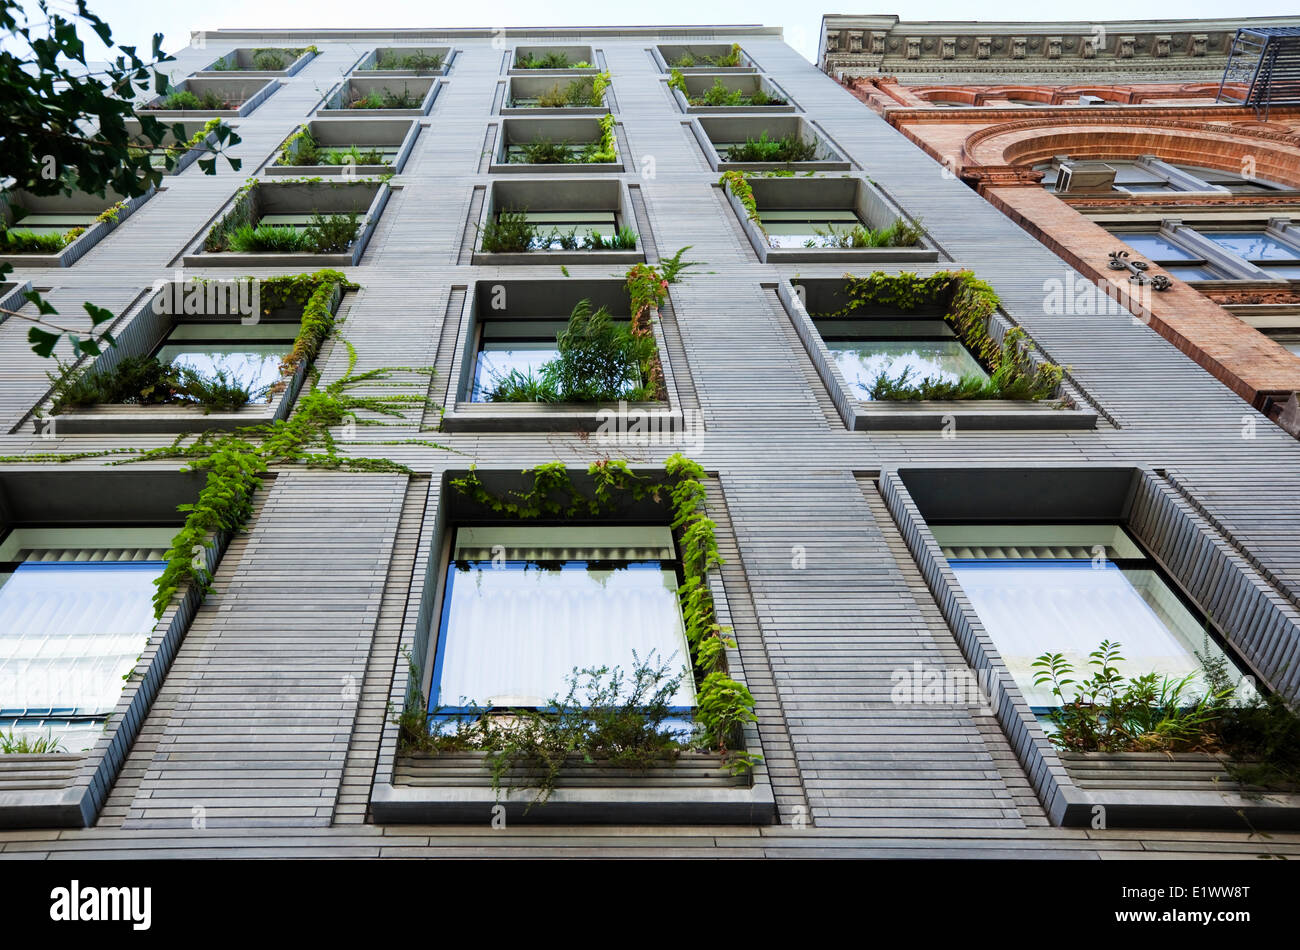 Vertical garden created by discreetly integrating planter boxes on every window sill this building thereby allowing - Stock Image